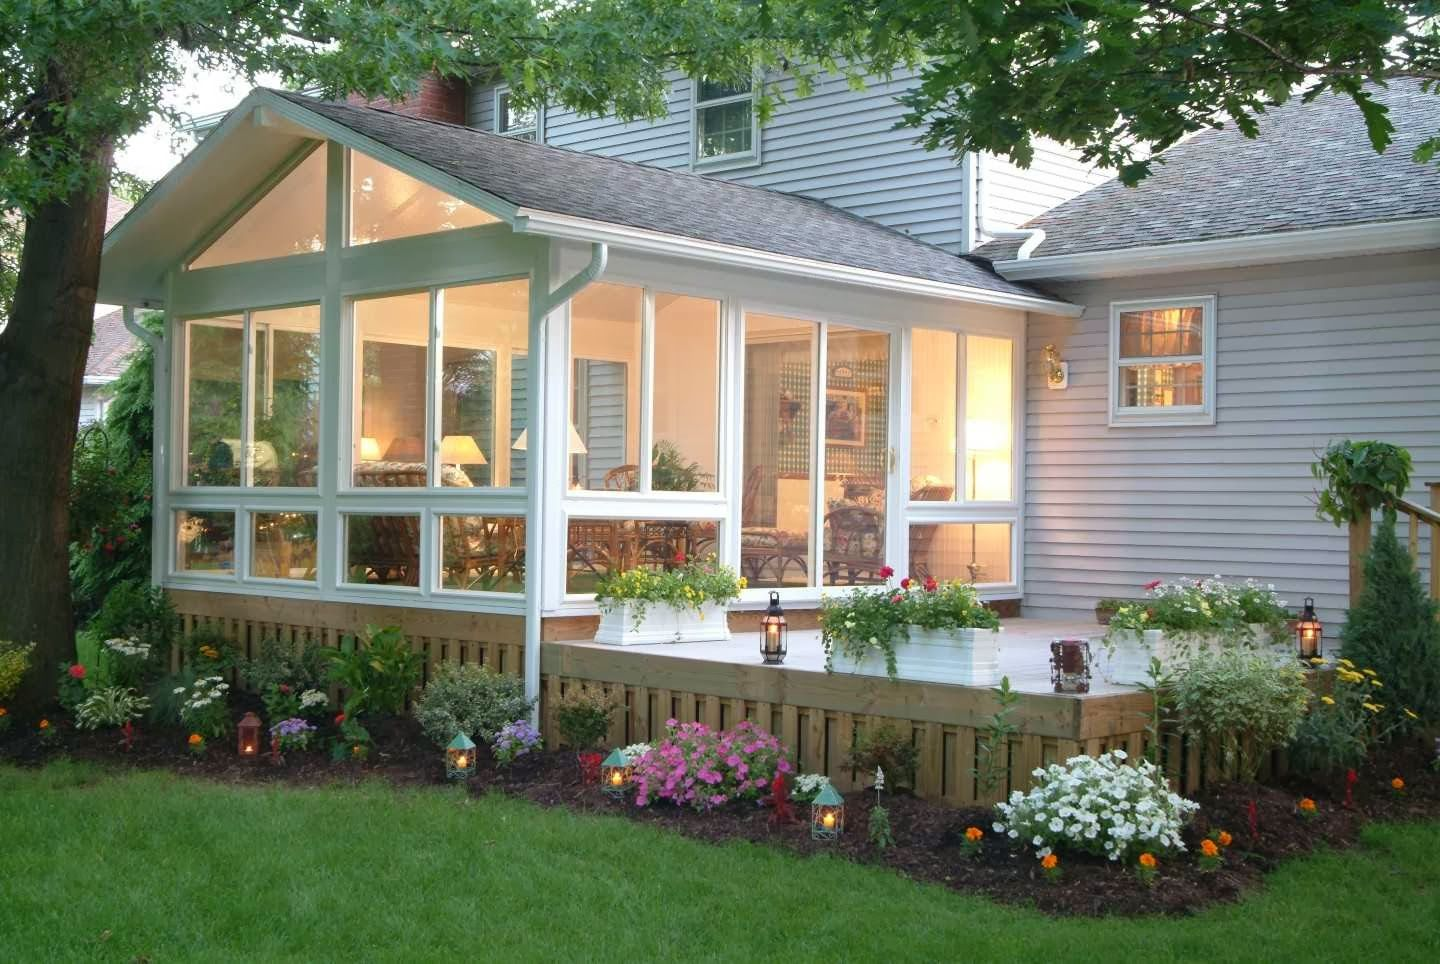 Window ideas for a sunroom  pin by kristen marie on home goals  pinterest  porch sunroom